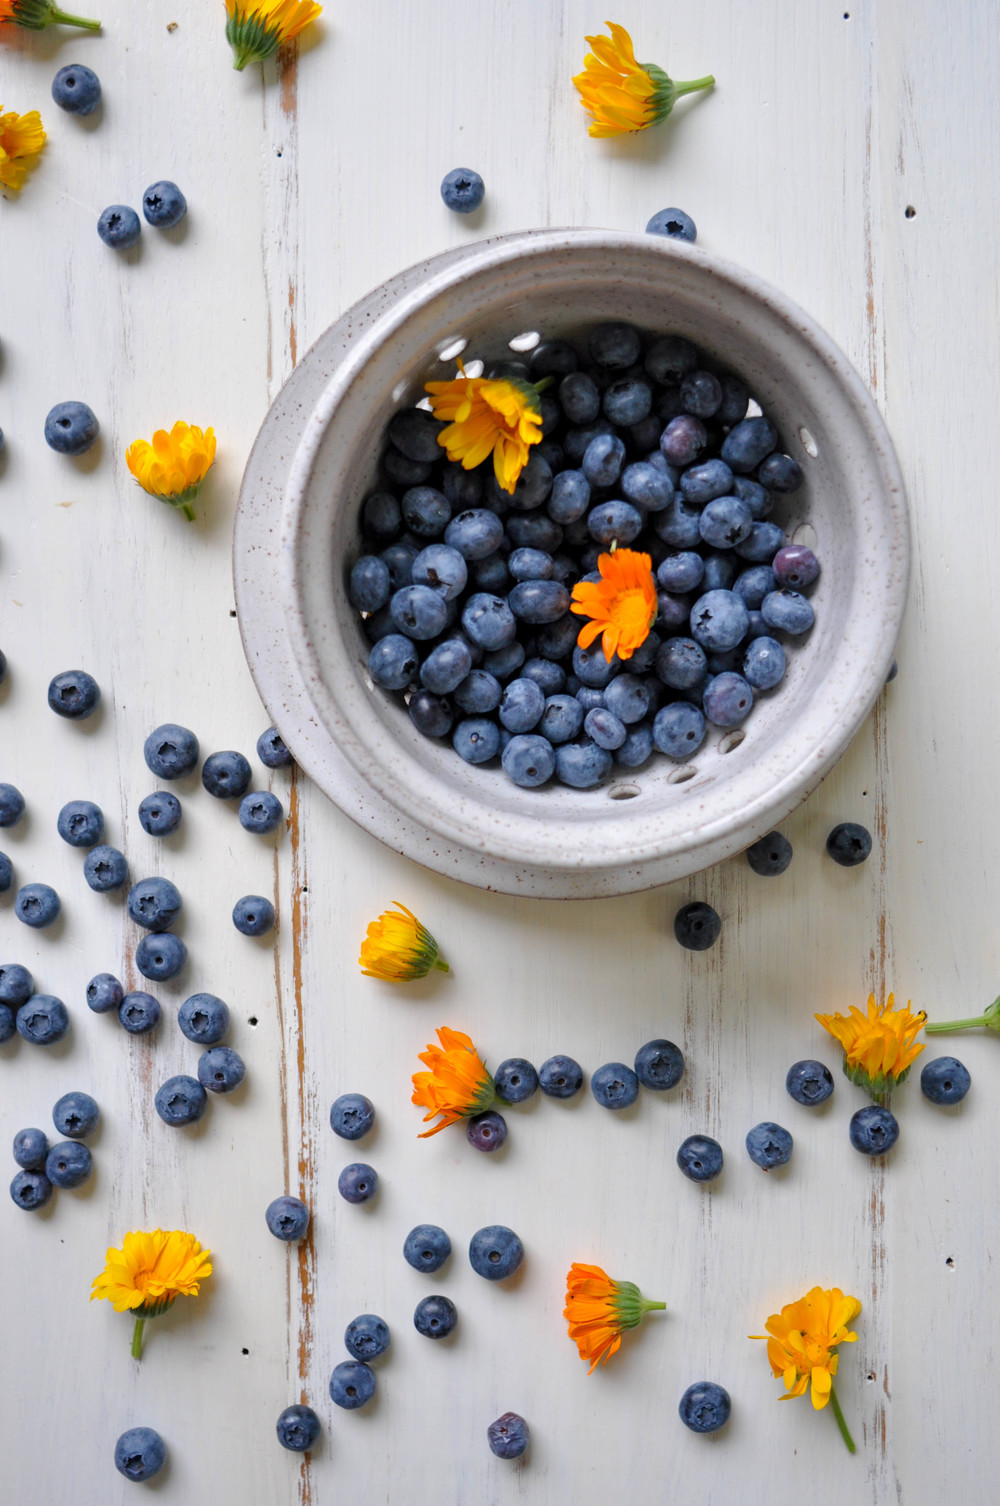 blueberries-berry-bowl-flowers